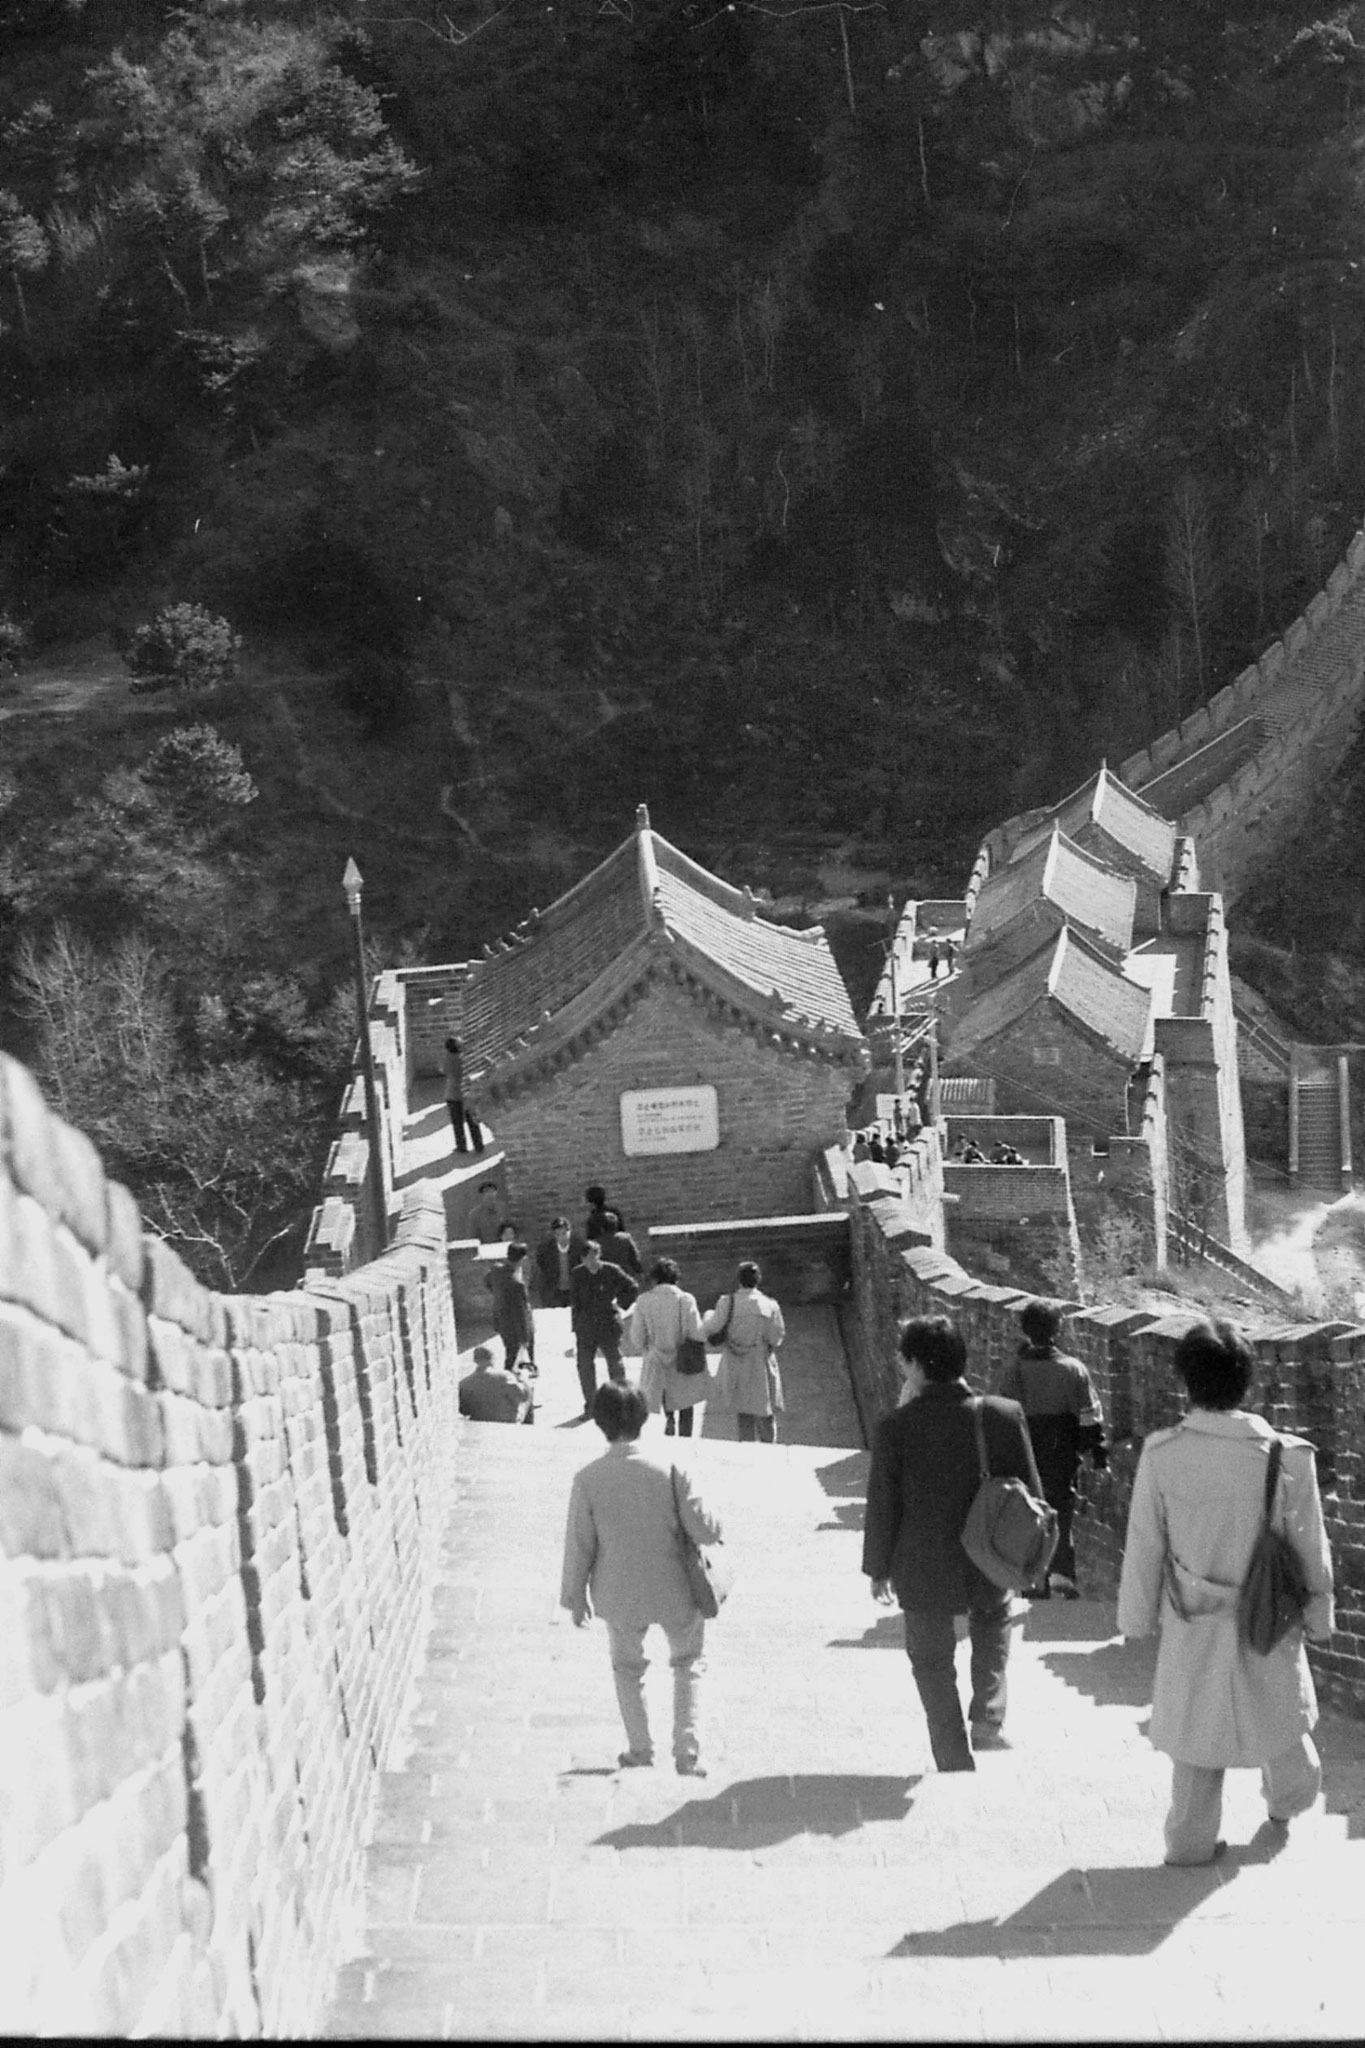 13/11/1988: 8: Great Wall at Mutianyu